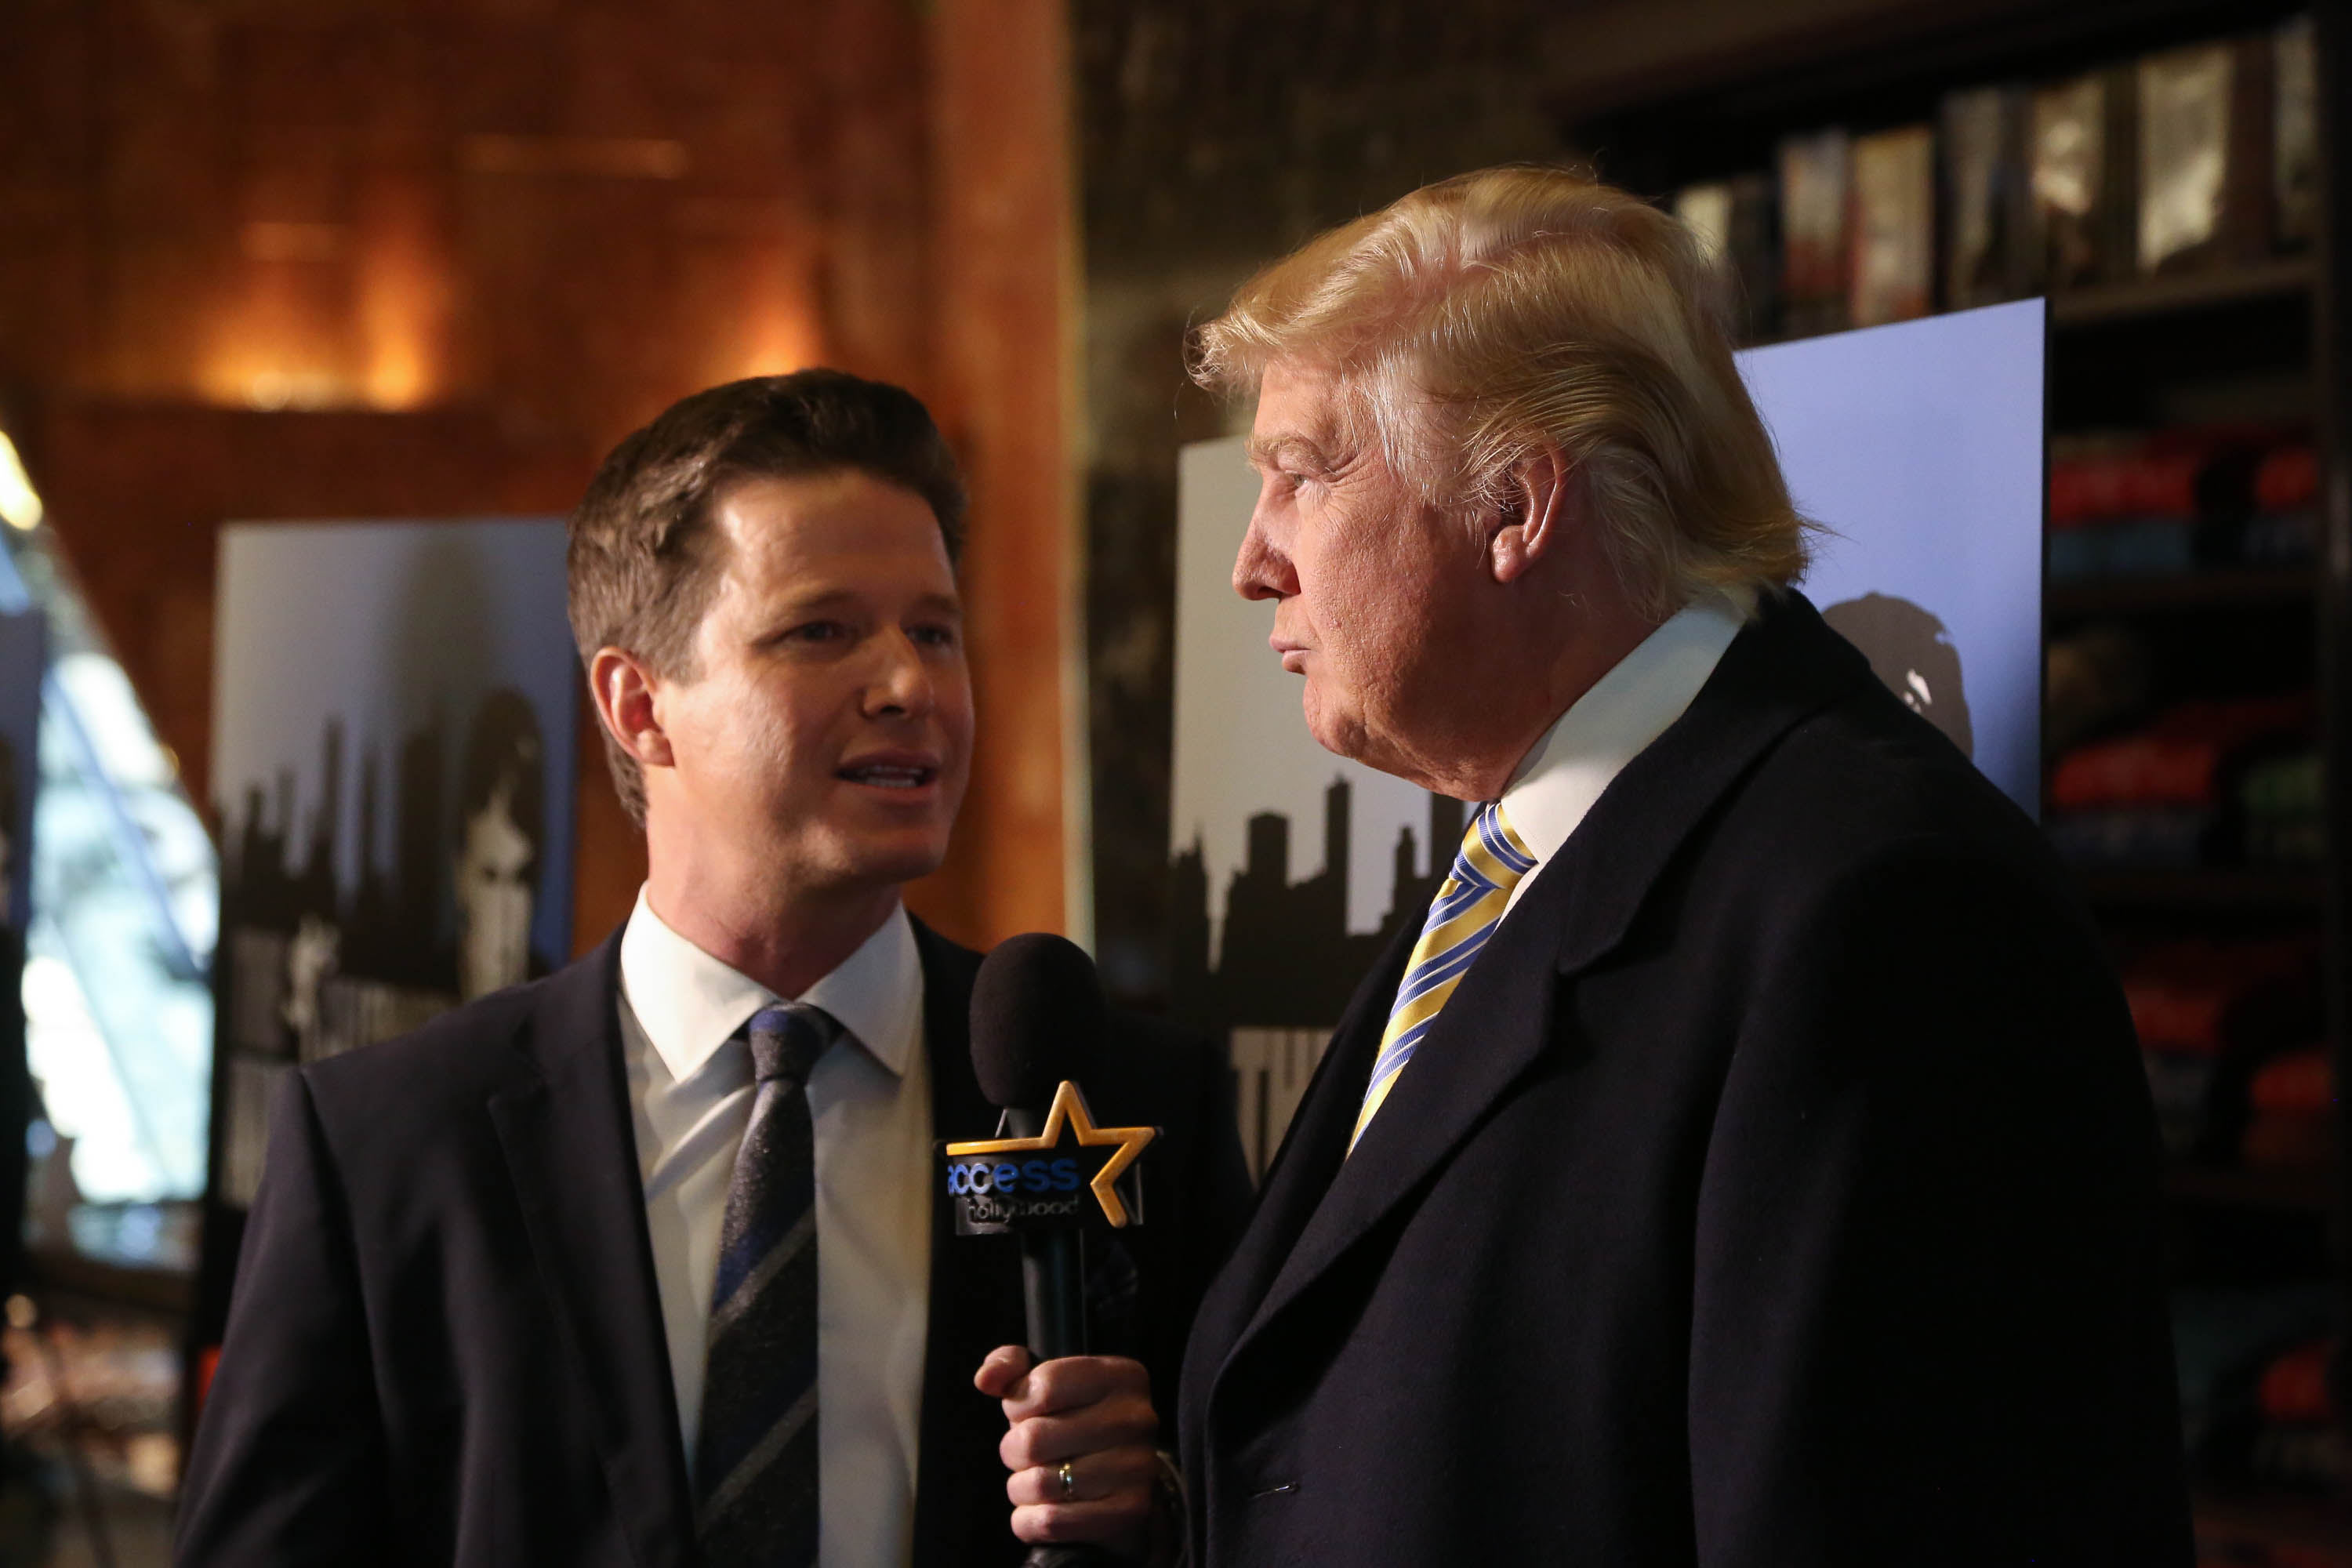 Donald Trump (R) is interviewed by Billy Bush of Access Hollywood at  Celebrity Apprentice  Red Carpet Event at Trump Tower on Jan. 20, 2015 in New York City.